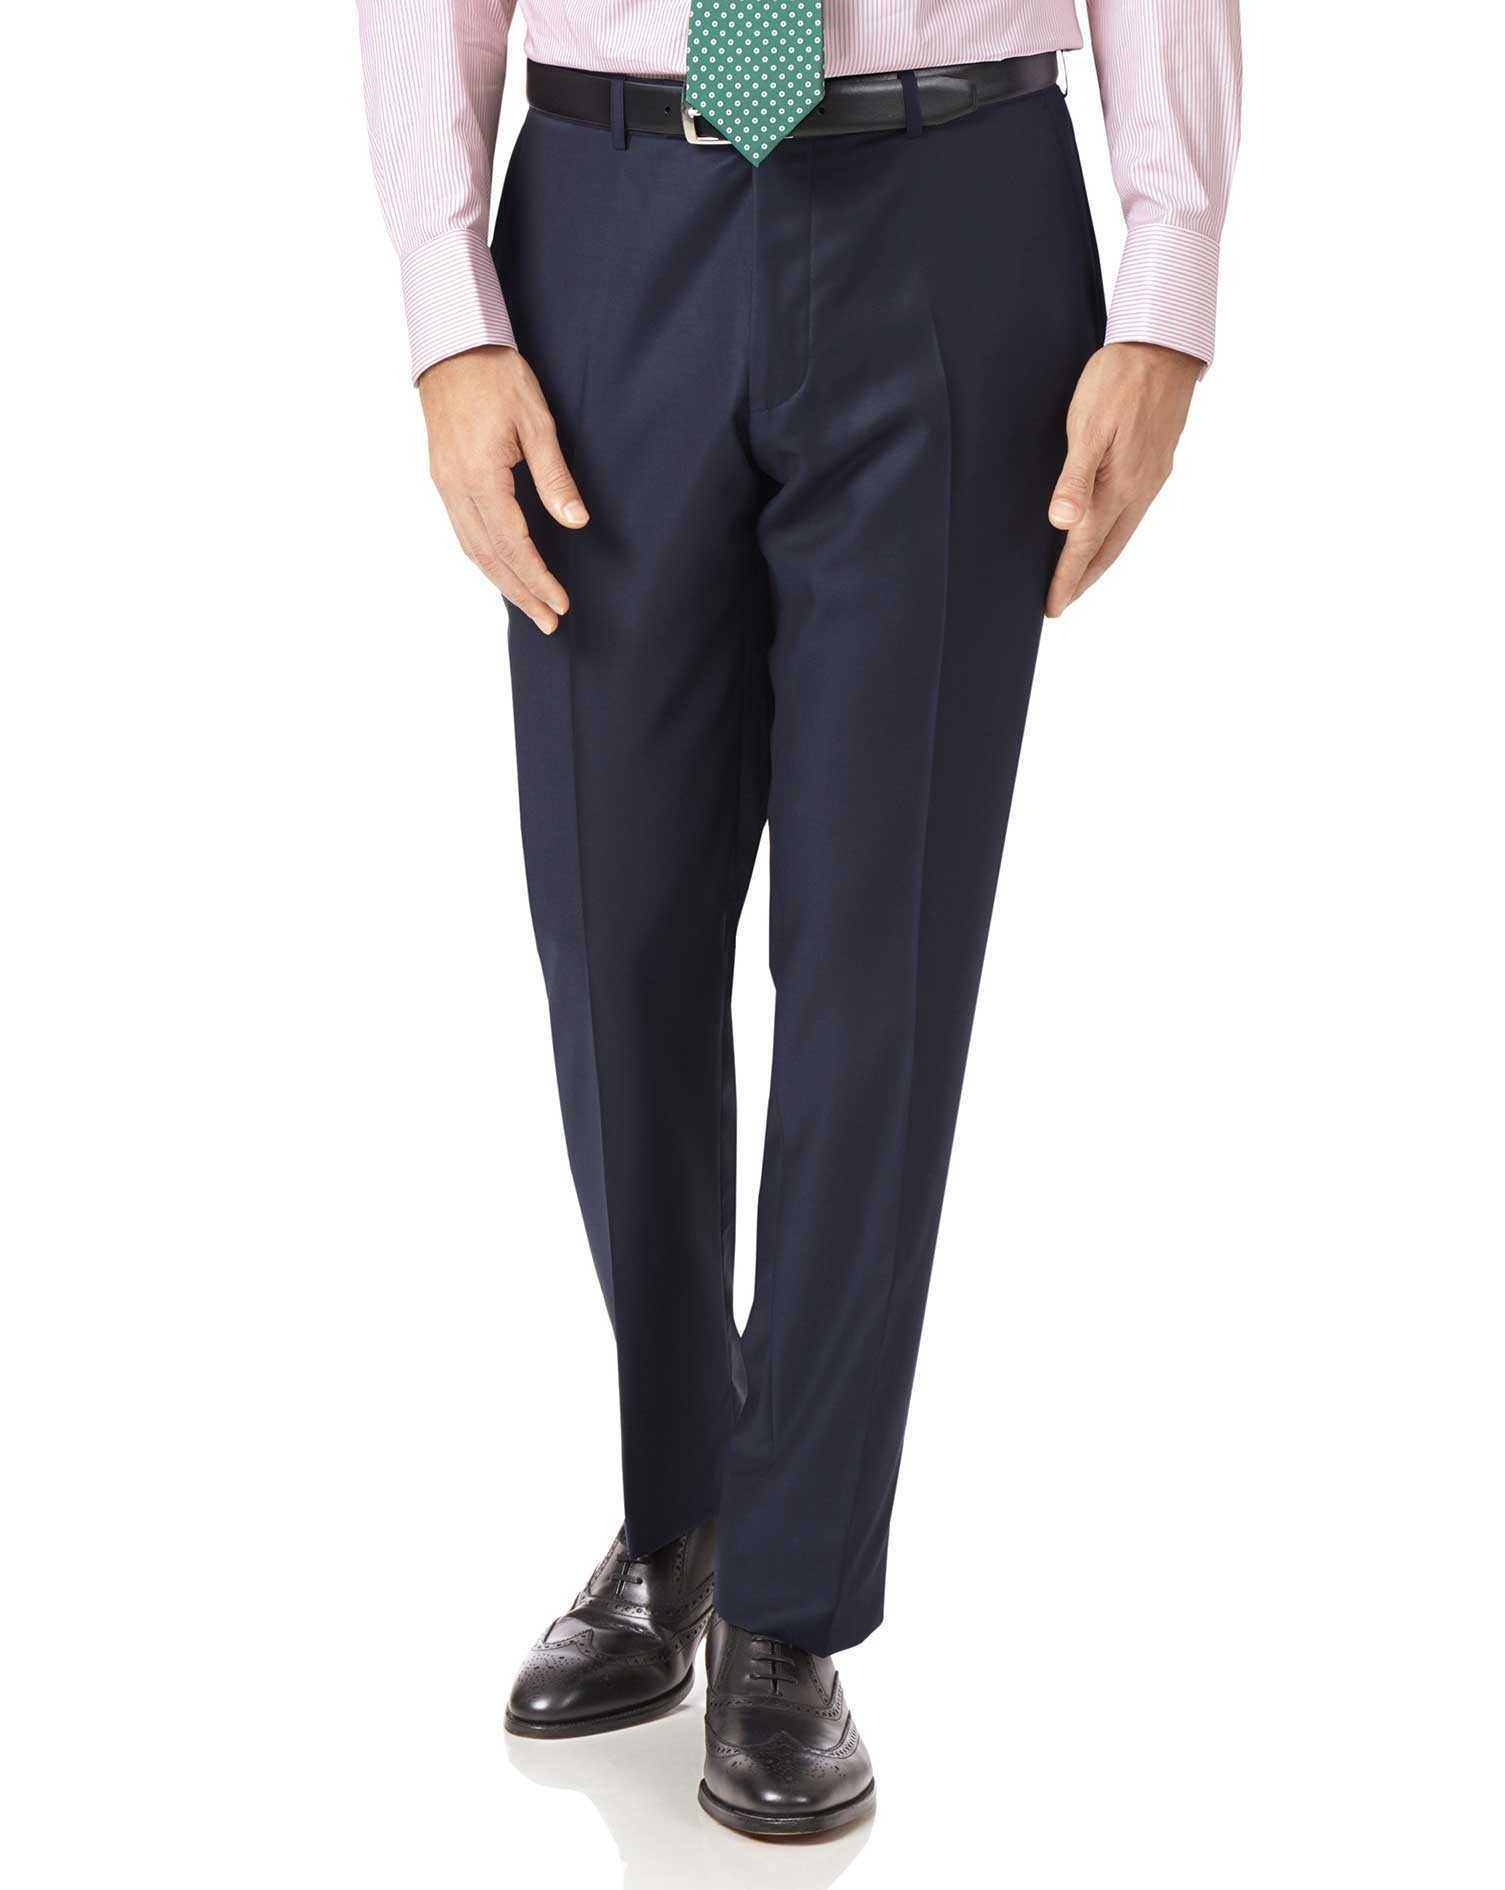 Navy Slim Fit Luxury Italian Suit Trousers Size W34 L38 by Charles Tyrwhitt